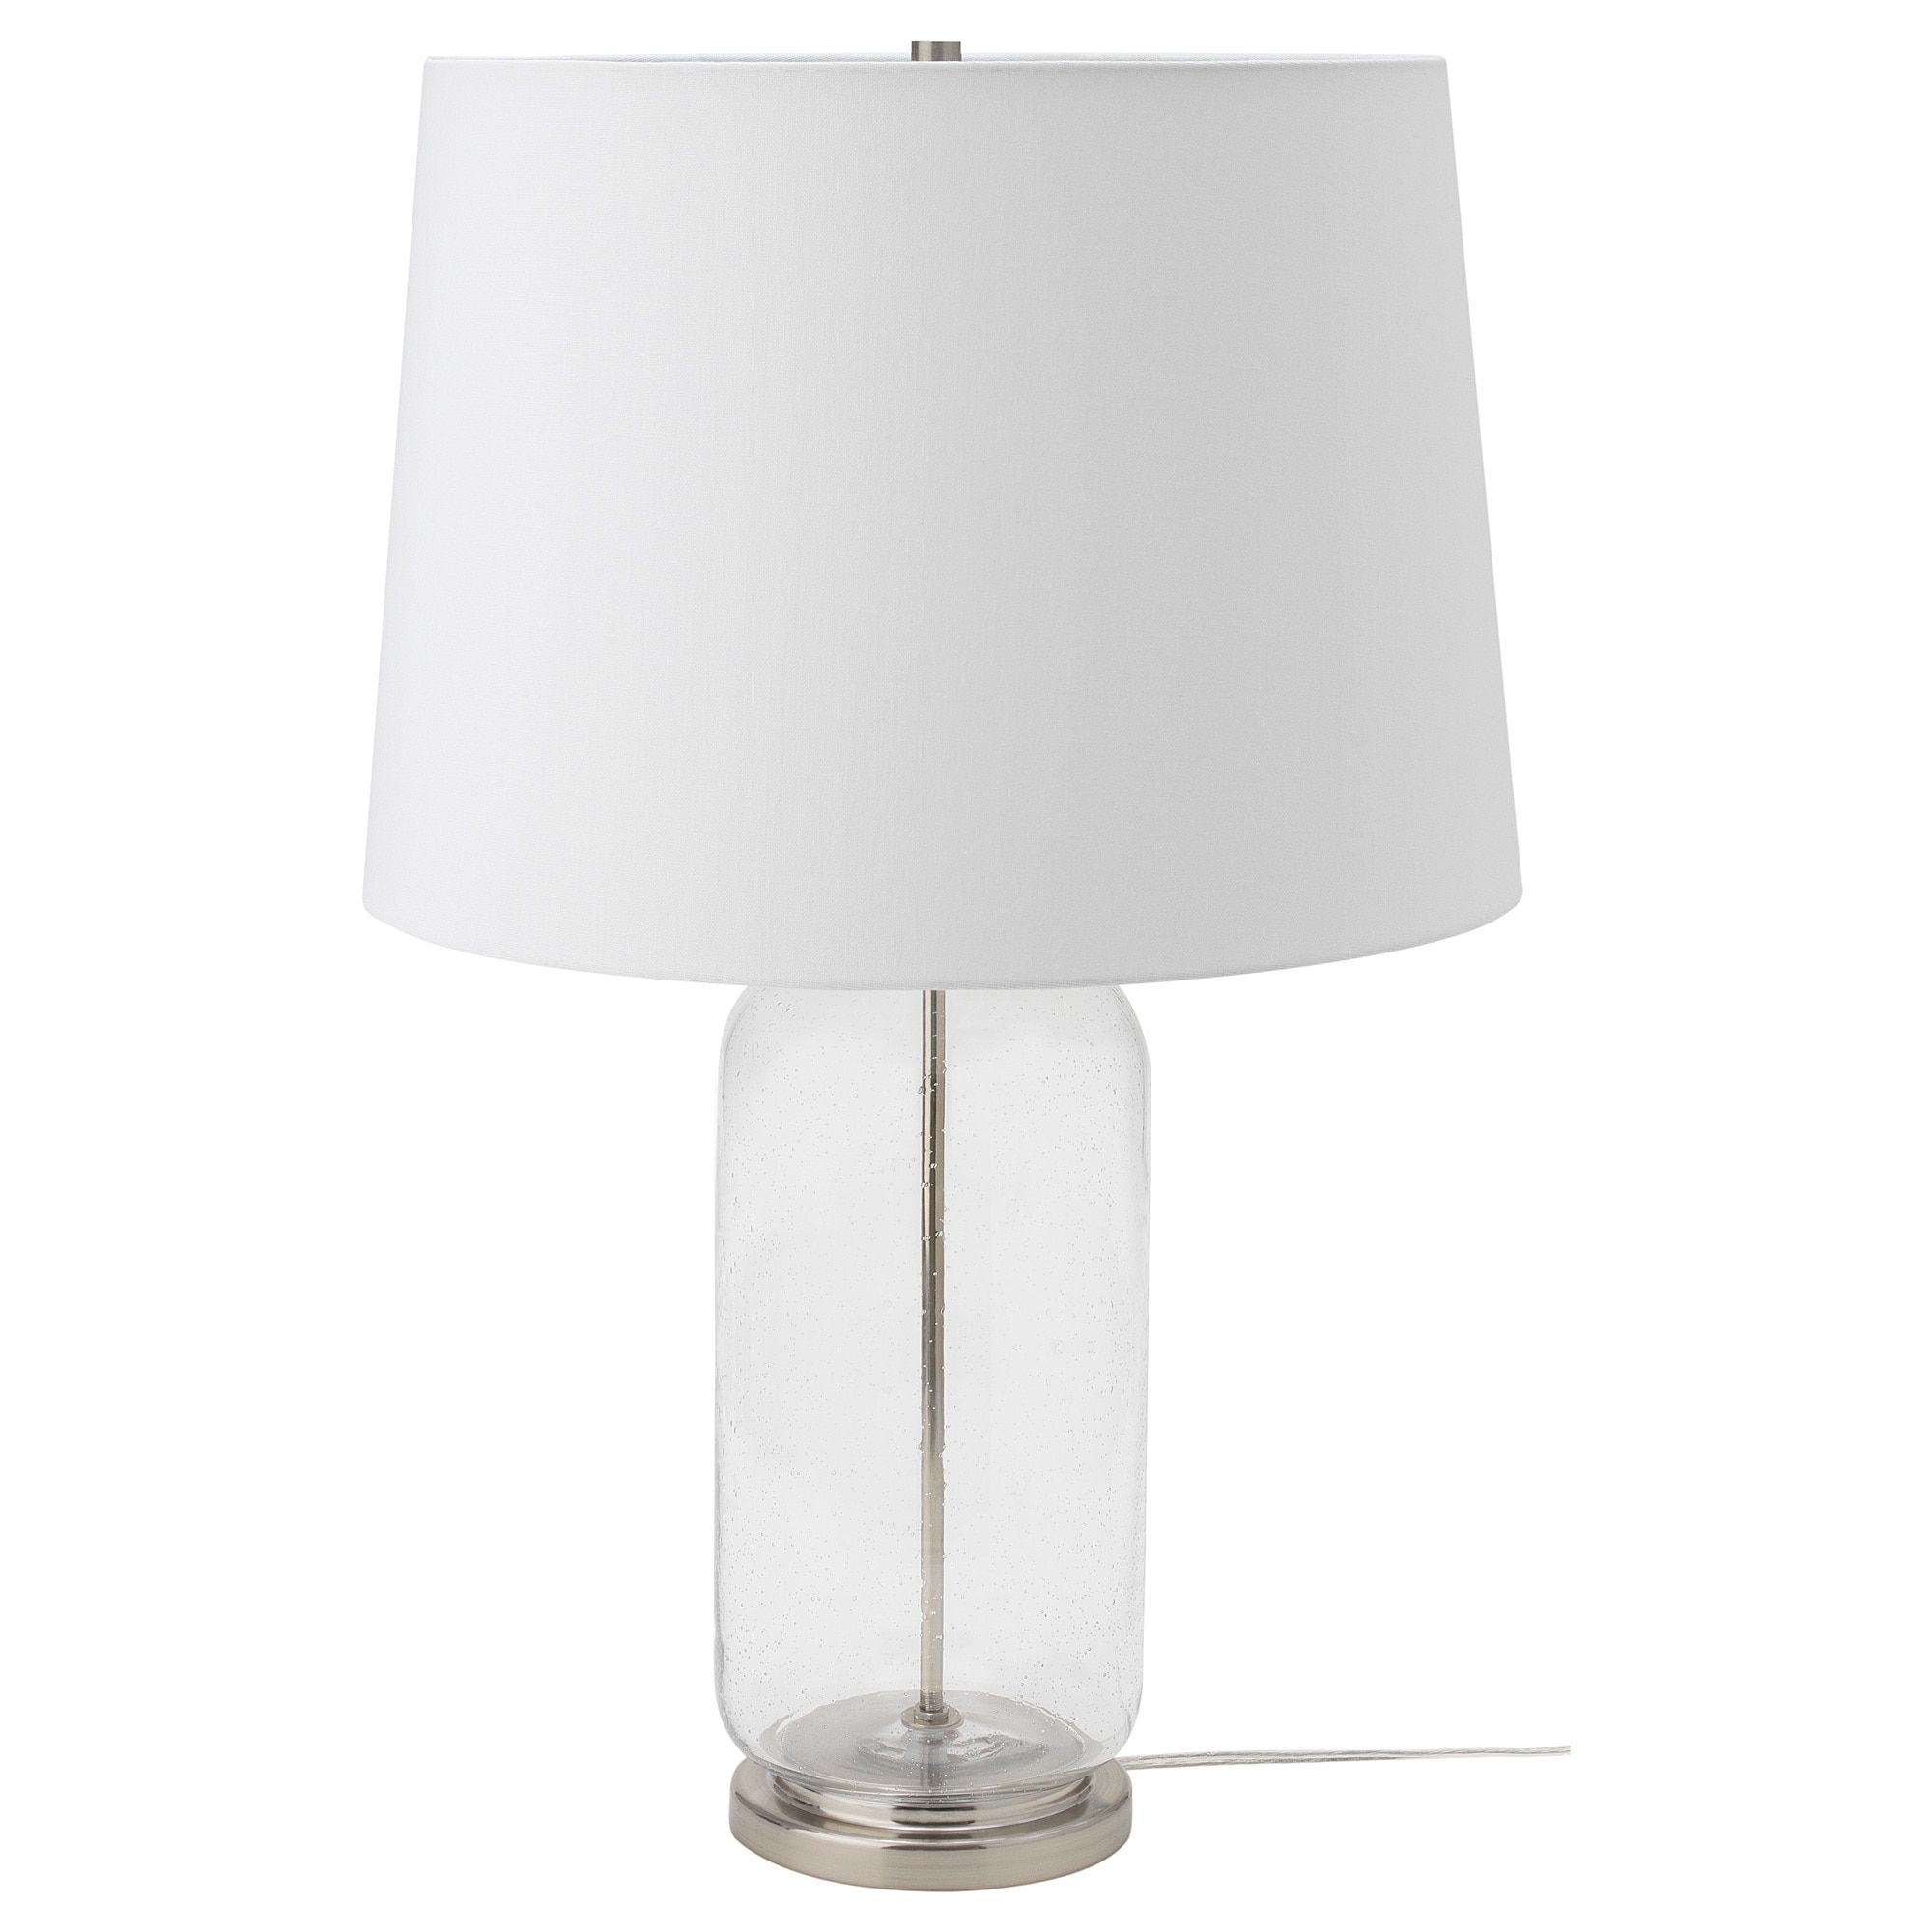 Ikea Us Furniture And Home Furnishings Glass Table Lamp Table Lamp Lamp